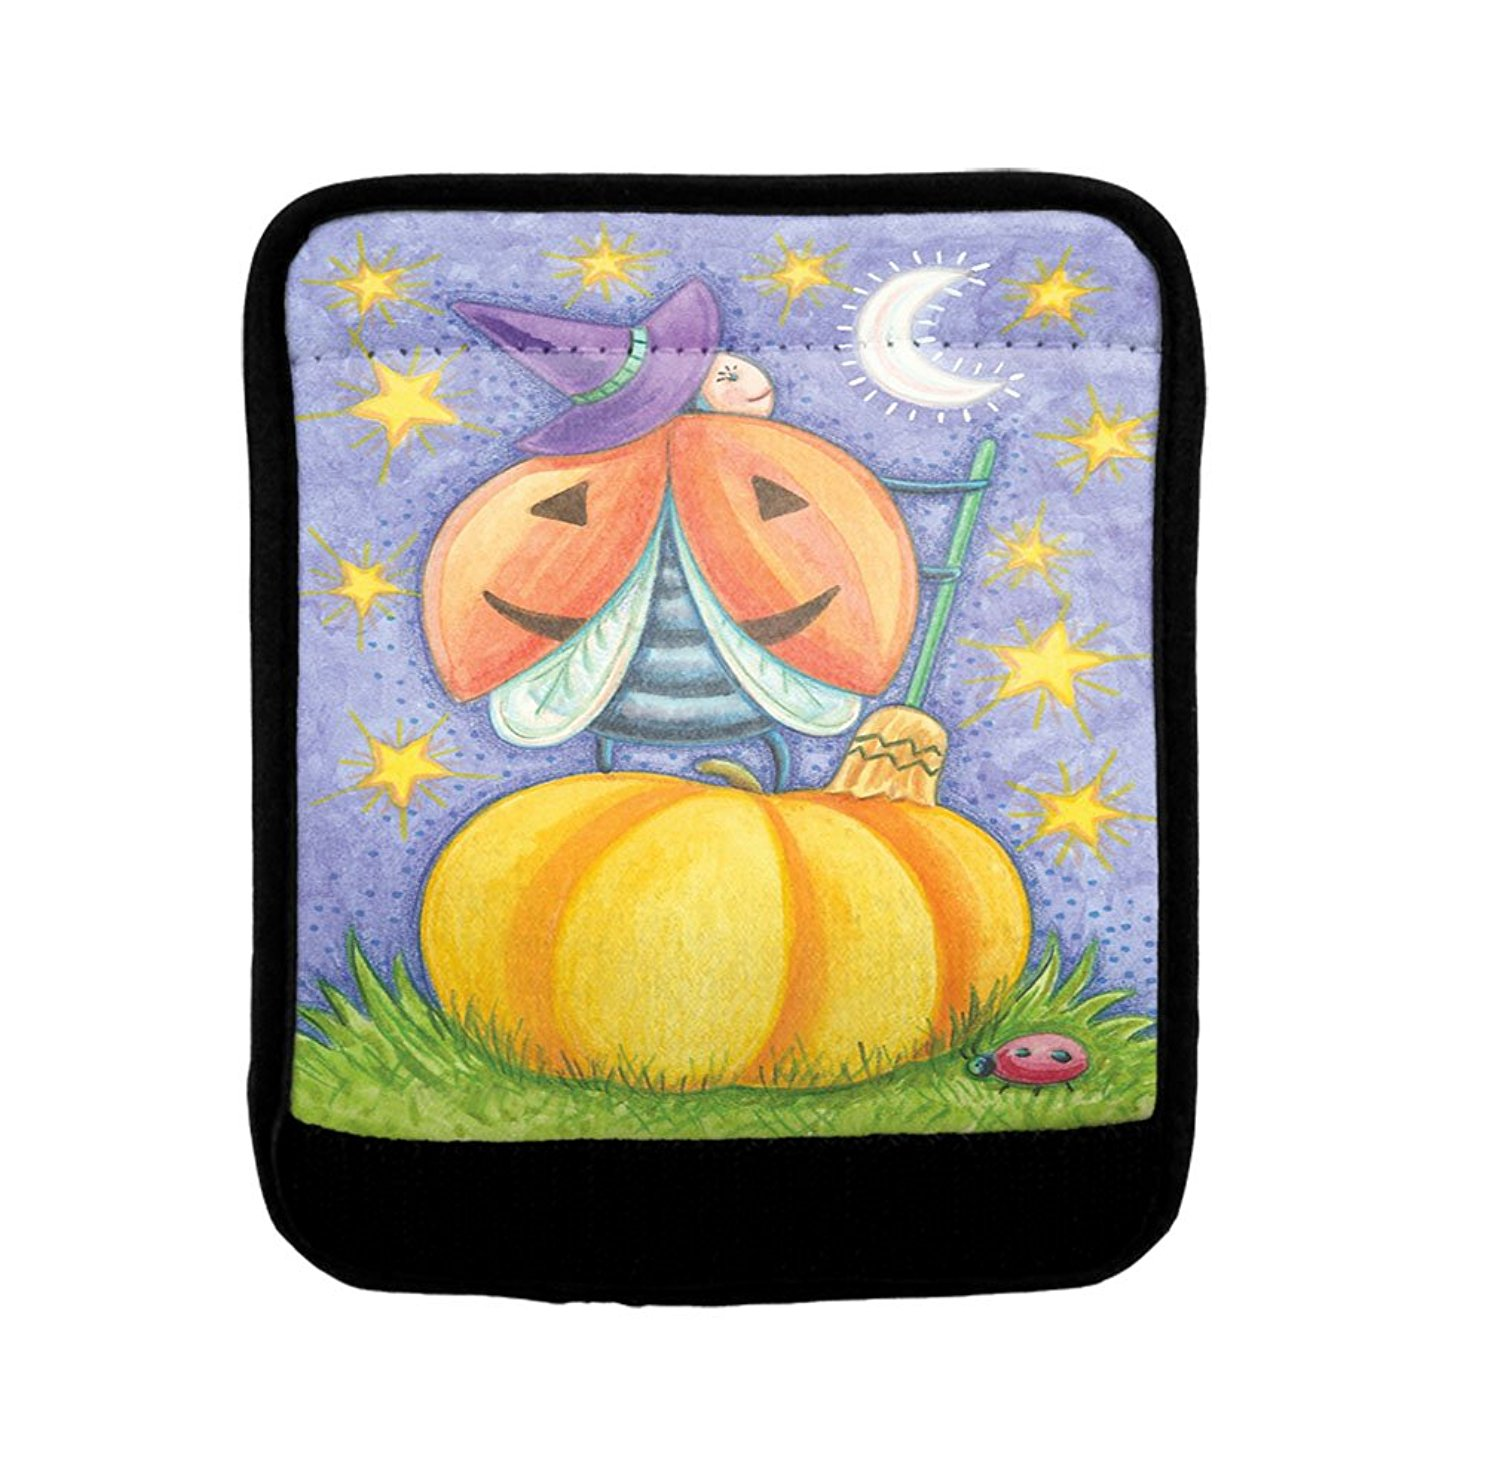 ALAZA Luggage Protector,Halloween Pumpkin Elastic Travel Luggage Suitcase Cover,Washable and Durable Anti-Scratch Case Protective Cover for 18-32 Inches